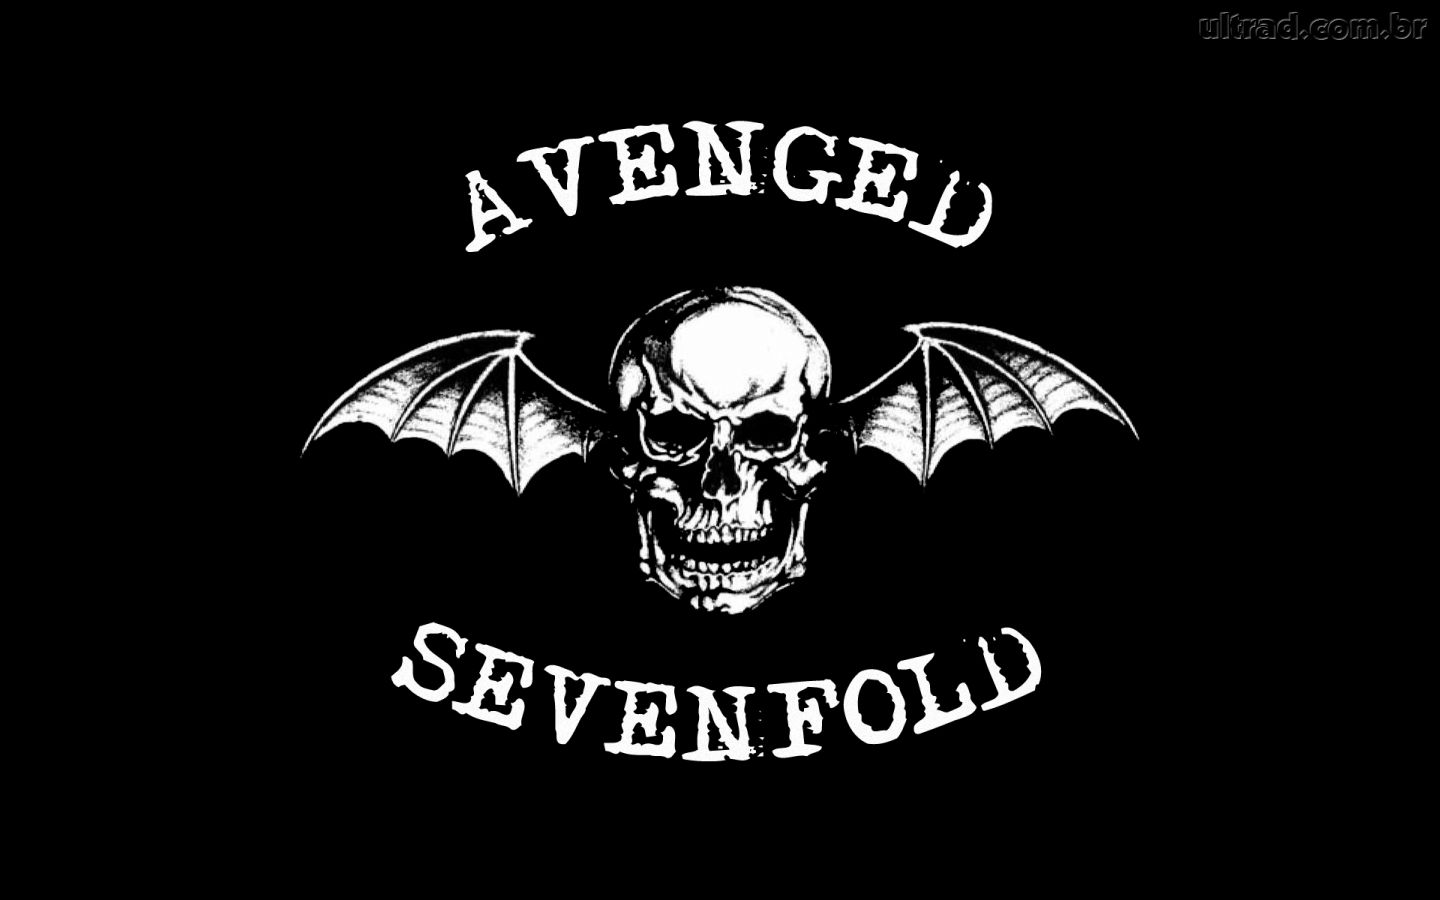 Avenged Sevenfold Anunciam Pausa Na Carreira